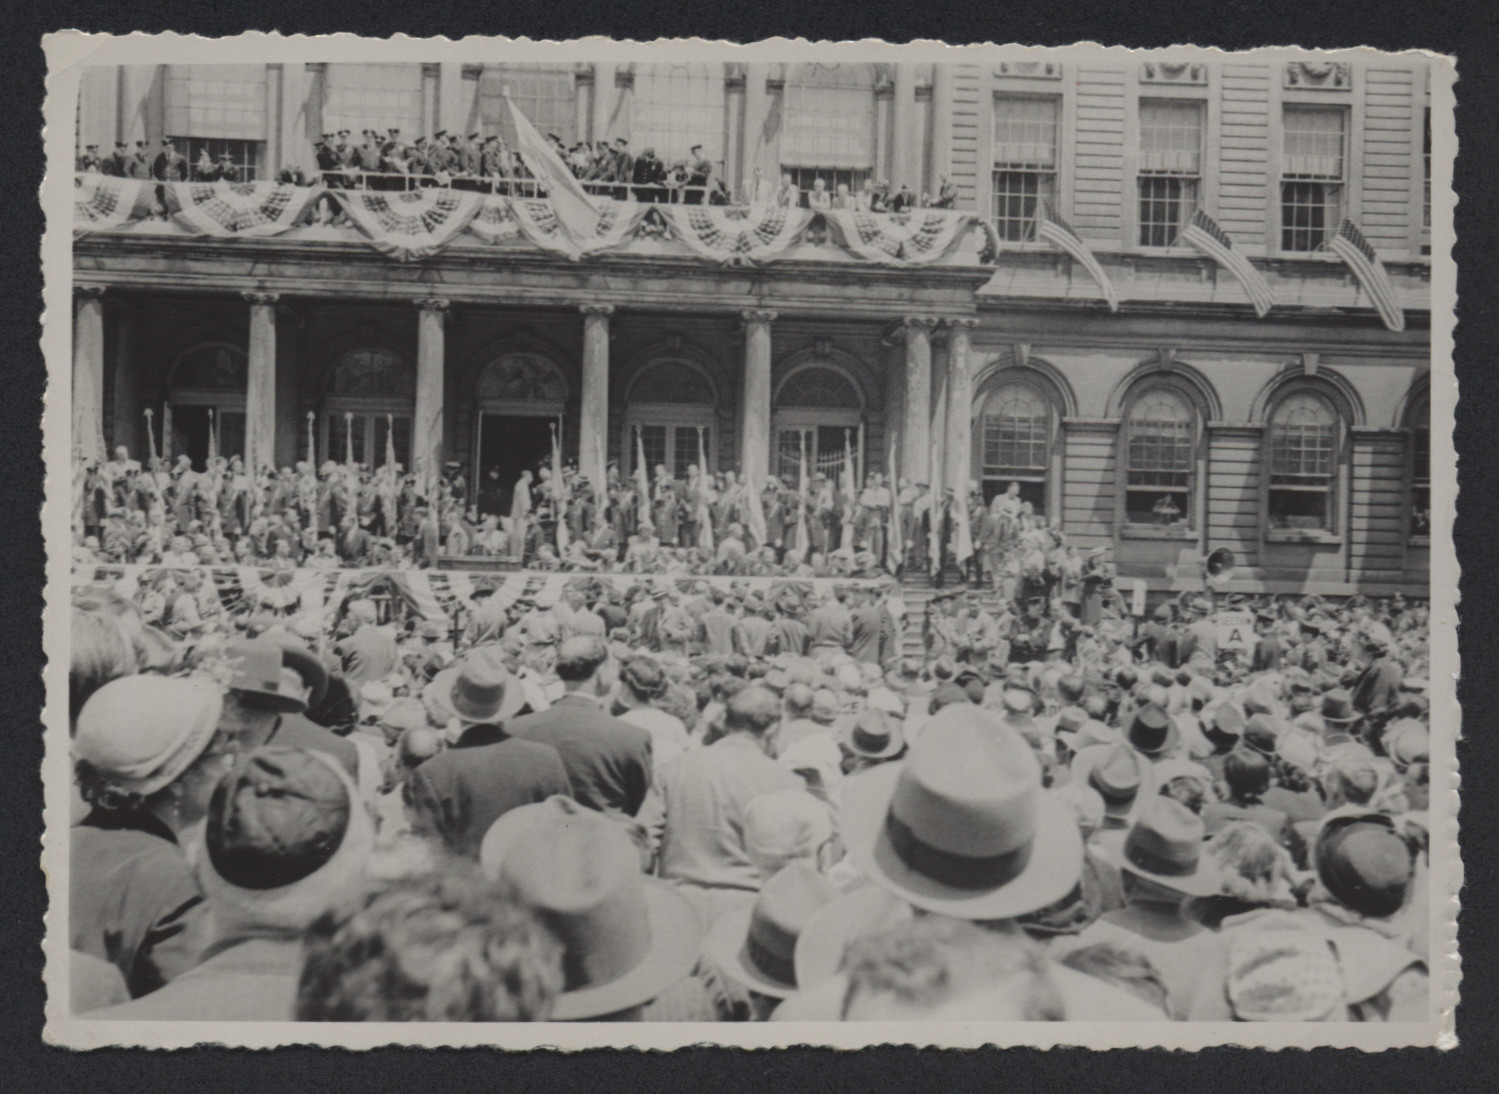 A large crowd gathers outside a building [perhaps in Italy] decorated with American and Israeli flags.  [It is possible the celebration was either of  the Declaration of Israeli Independence or of the Partition Plan.]